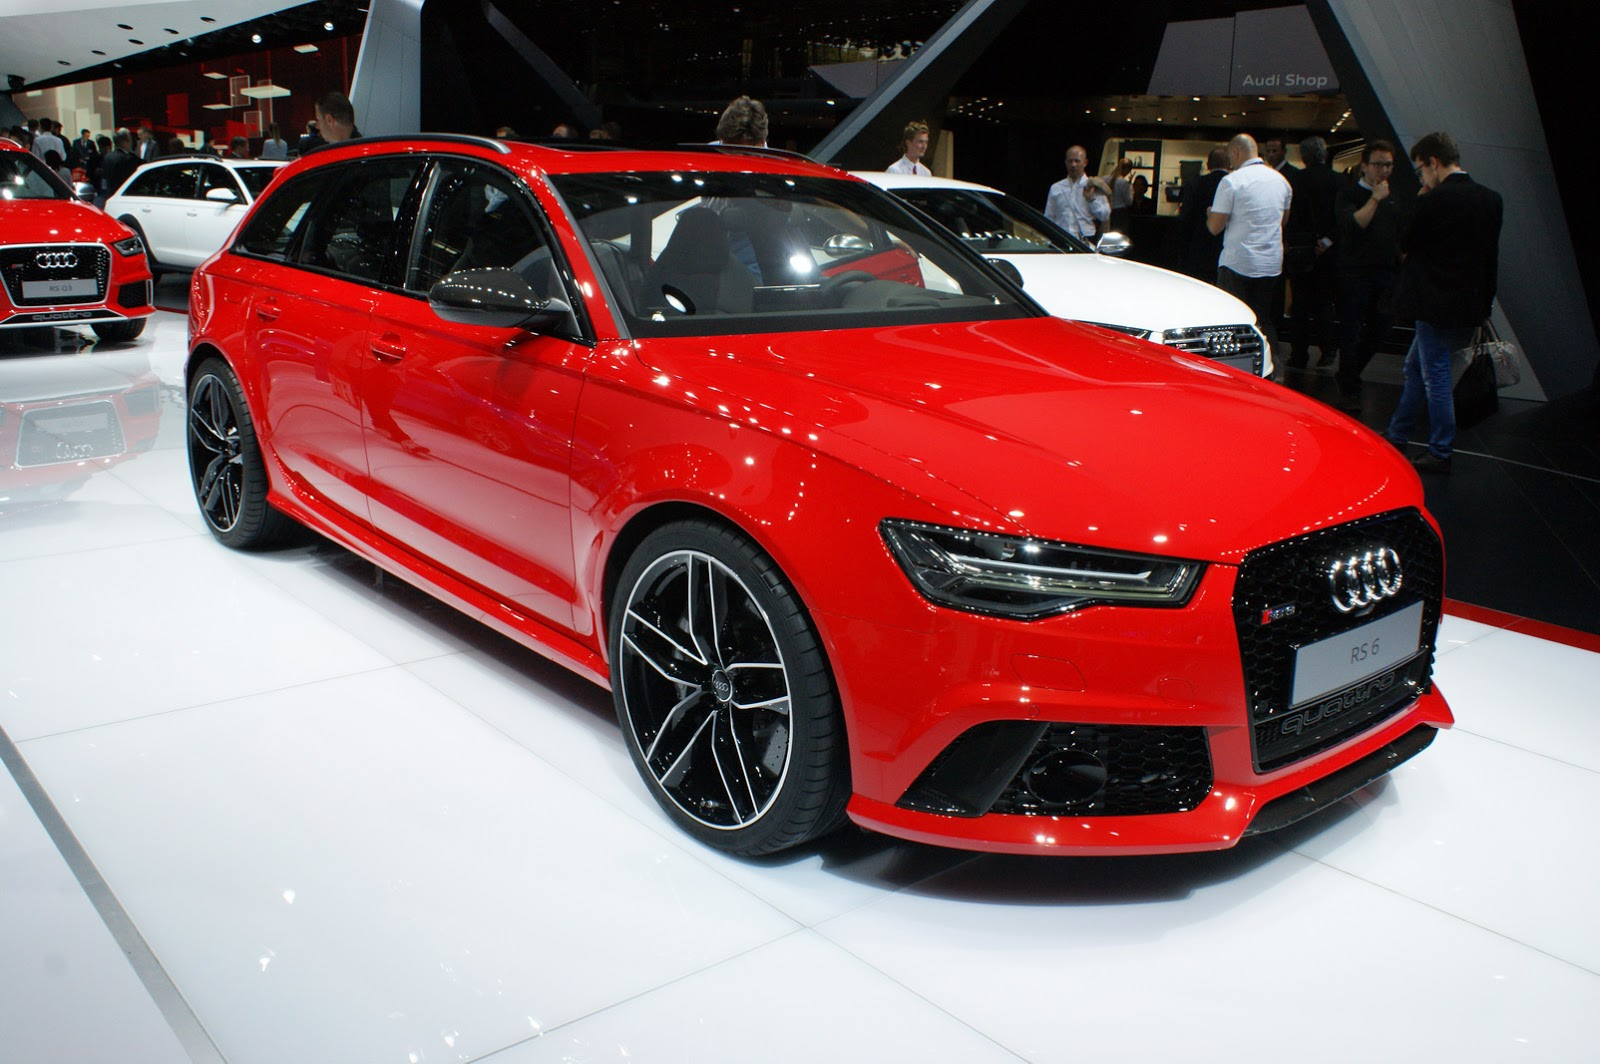 Audi S Facelifted A6 S6 Rs6 And Allroad Say Bonjour To Paris Carscoops